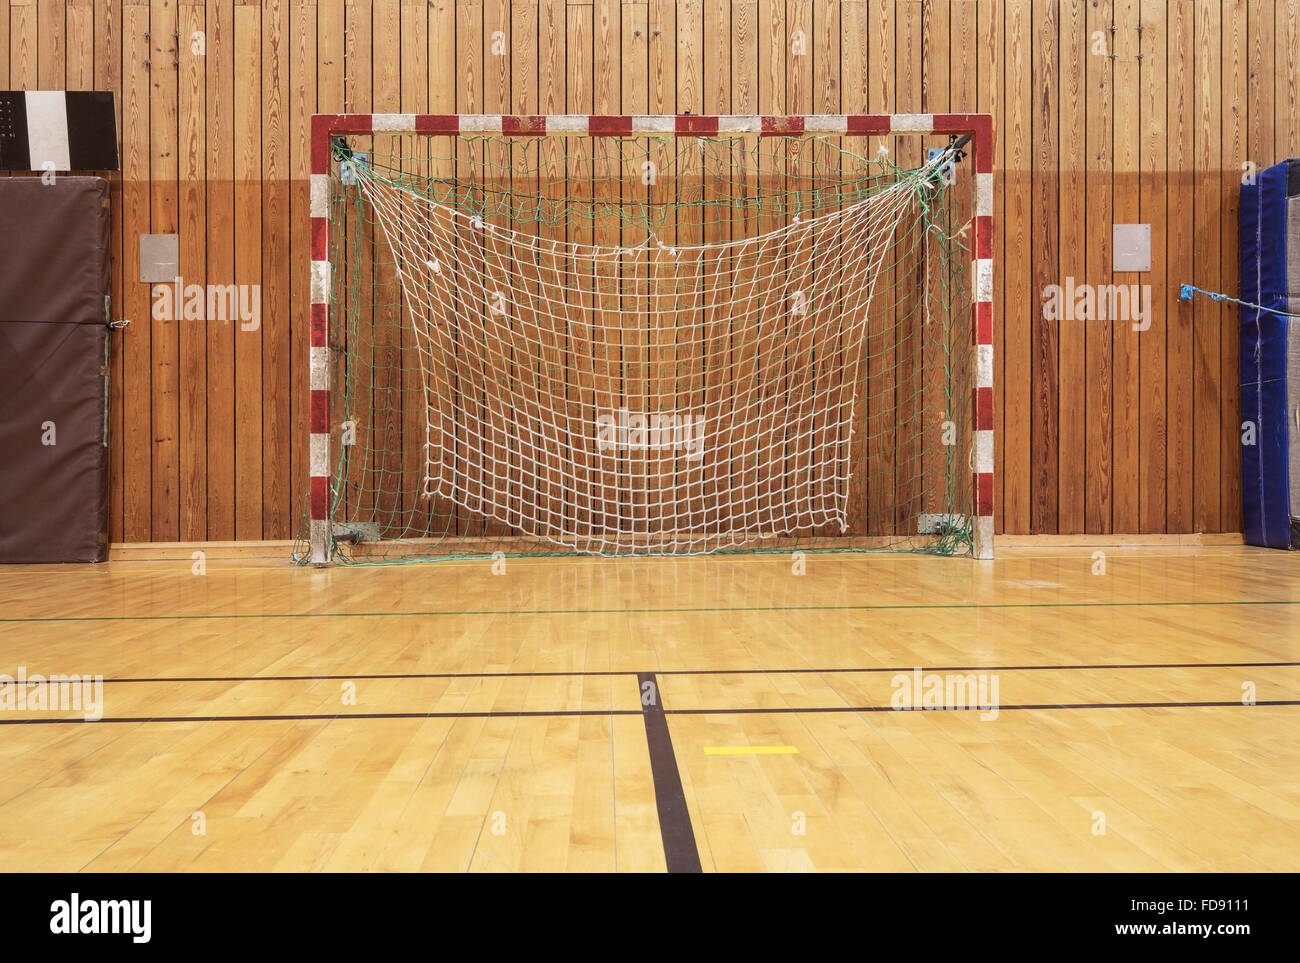 Soccer goal in an old gymhall - Stock Image